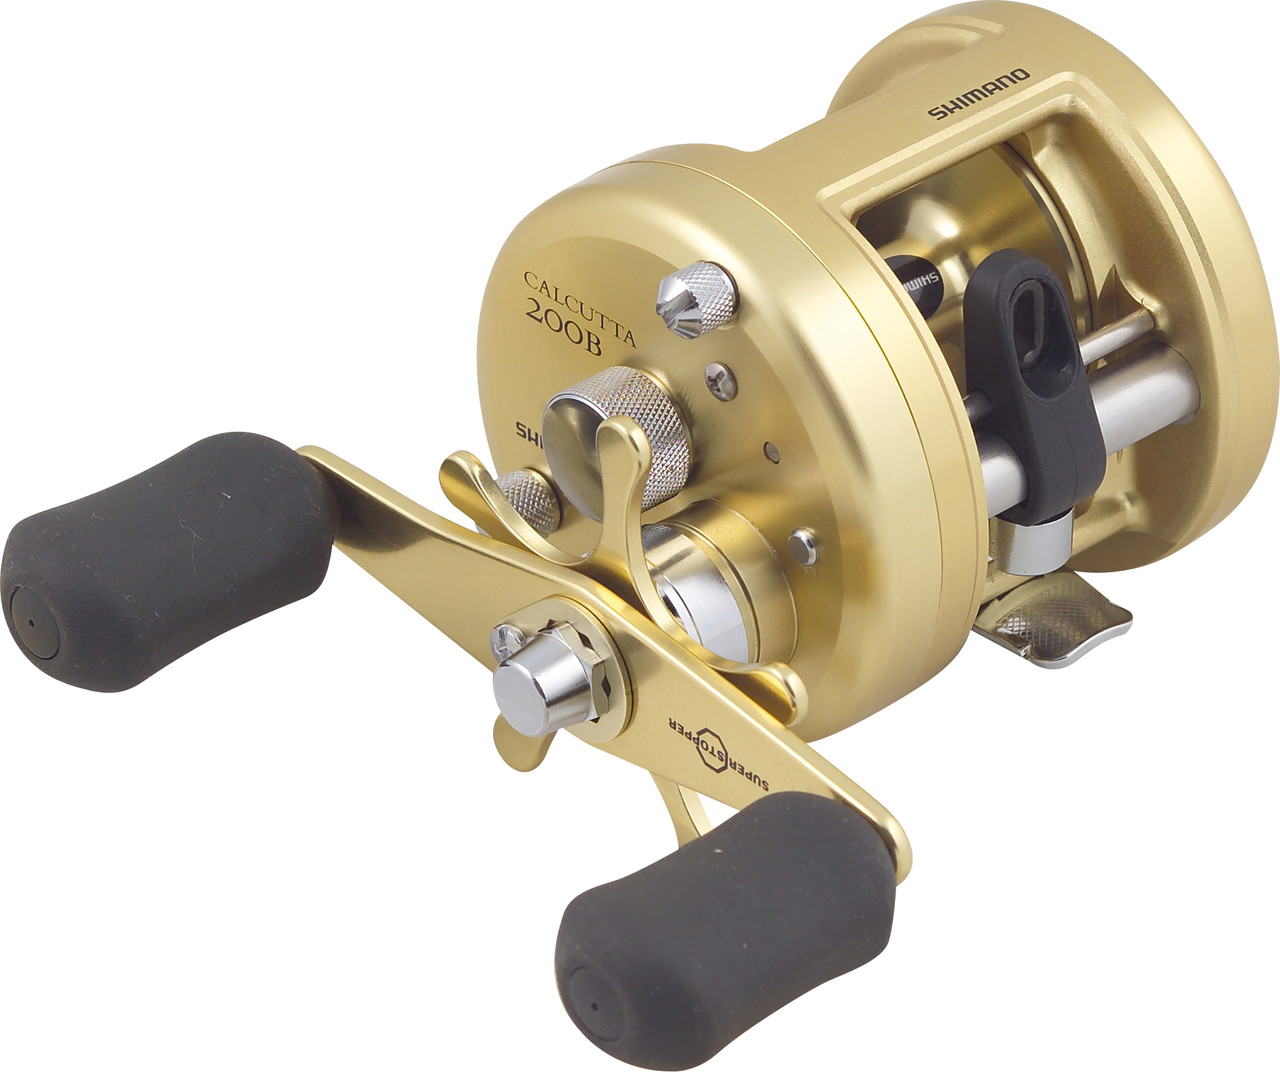 Shimano calcutta ct 200b baitcaster fishing reel fishing for How to reel in a fish